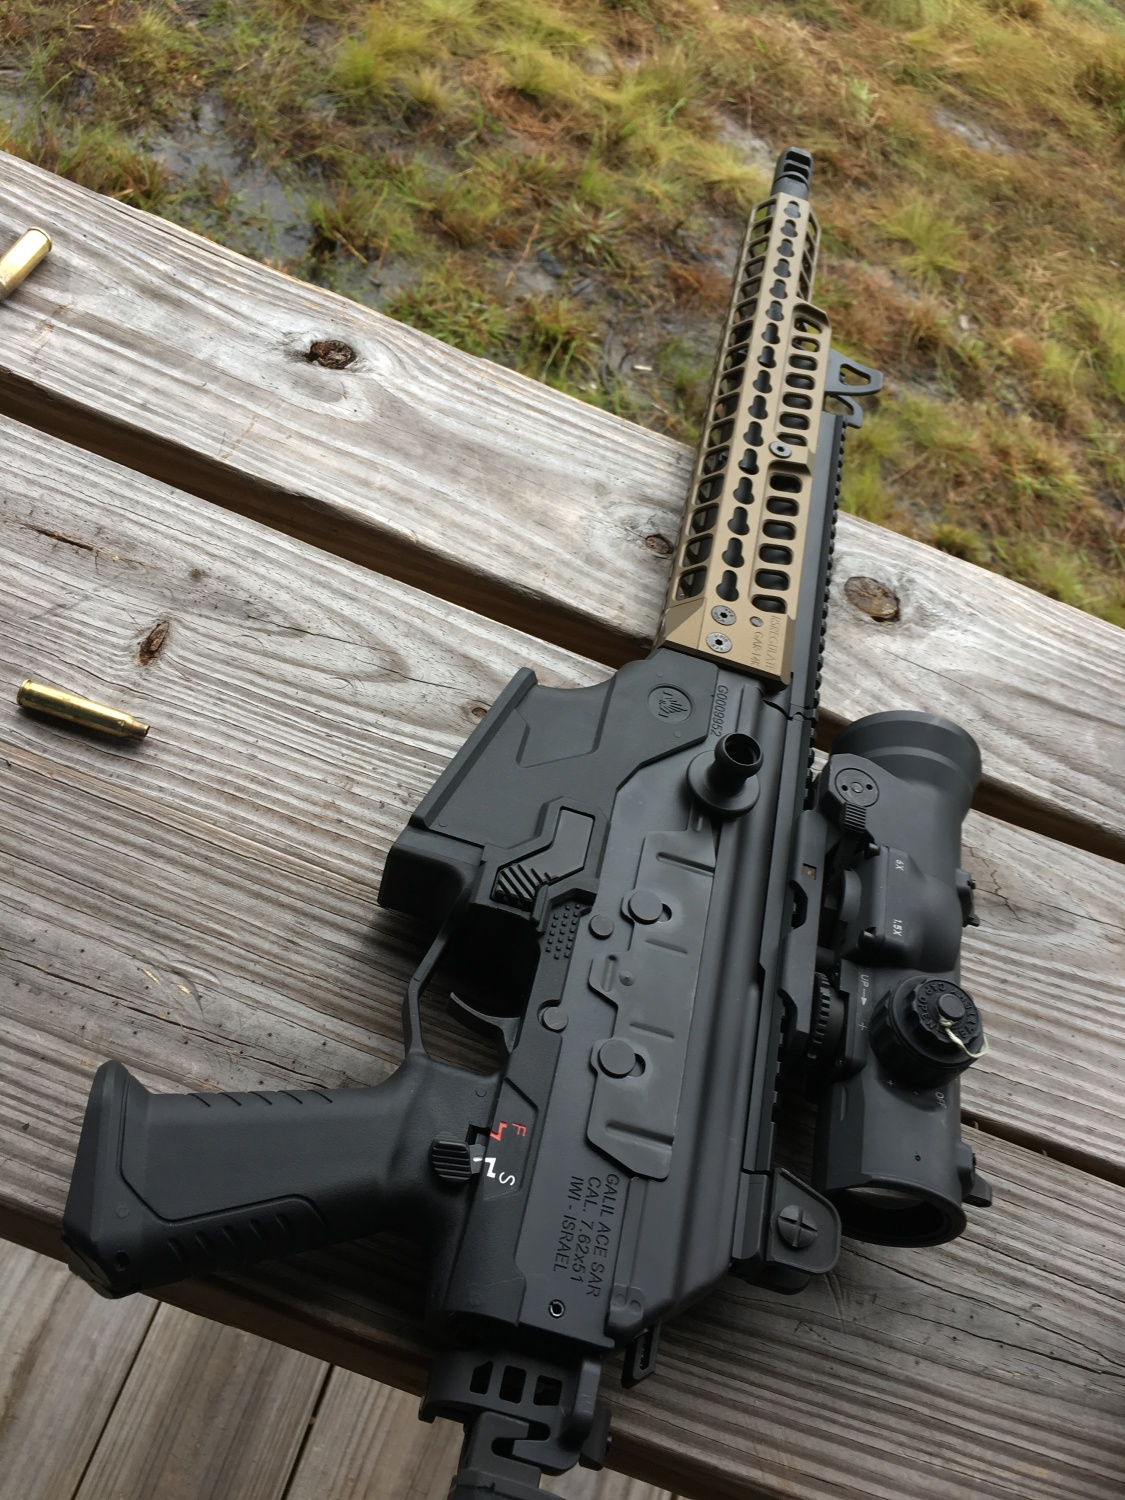 RS Regulate Updates IWI Galil With Handguard - Big 3 East